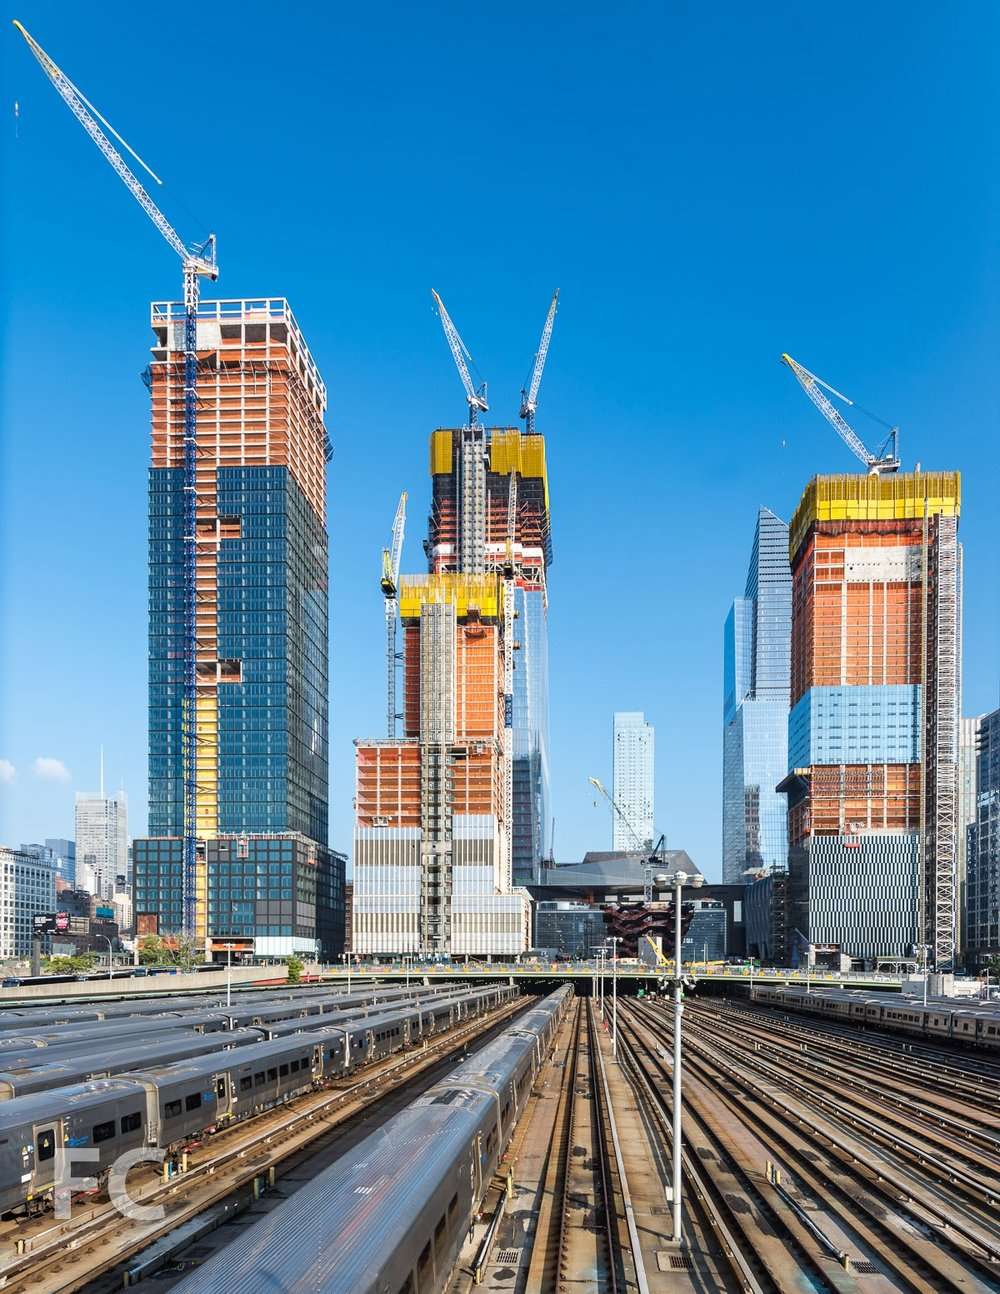 Looking east from the High Line towards the towers of Hudson Yards: 15 Hudson Yards and The Shed (far right), 10 Hudson Yards (right), Vessel (center), 30 Hudson Yards (left), 35 Hudson Yards (left), and 55 Hudson Yards (far left).